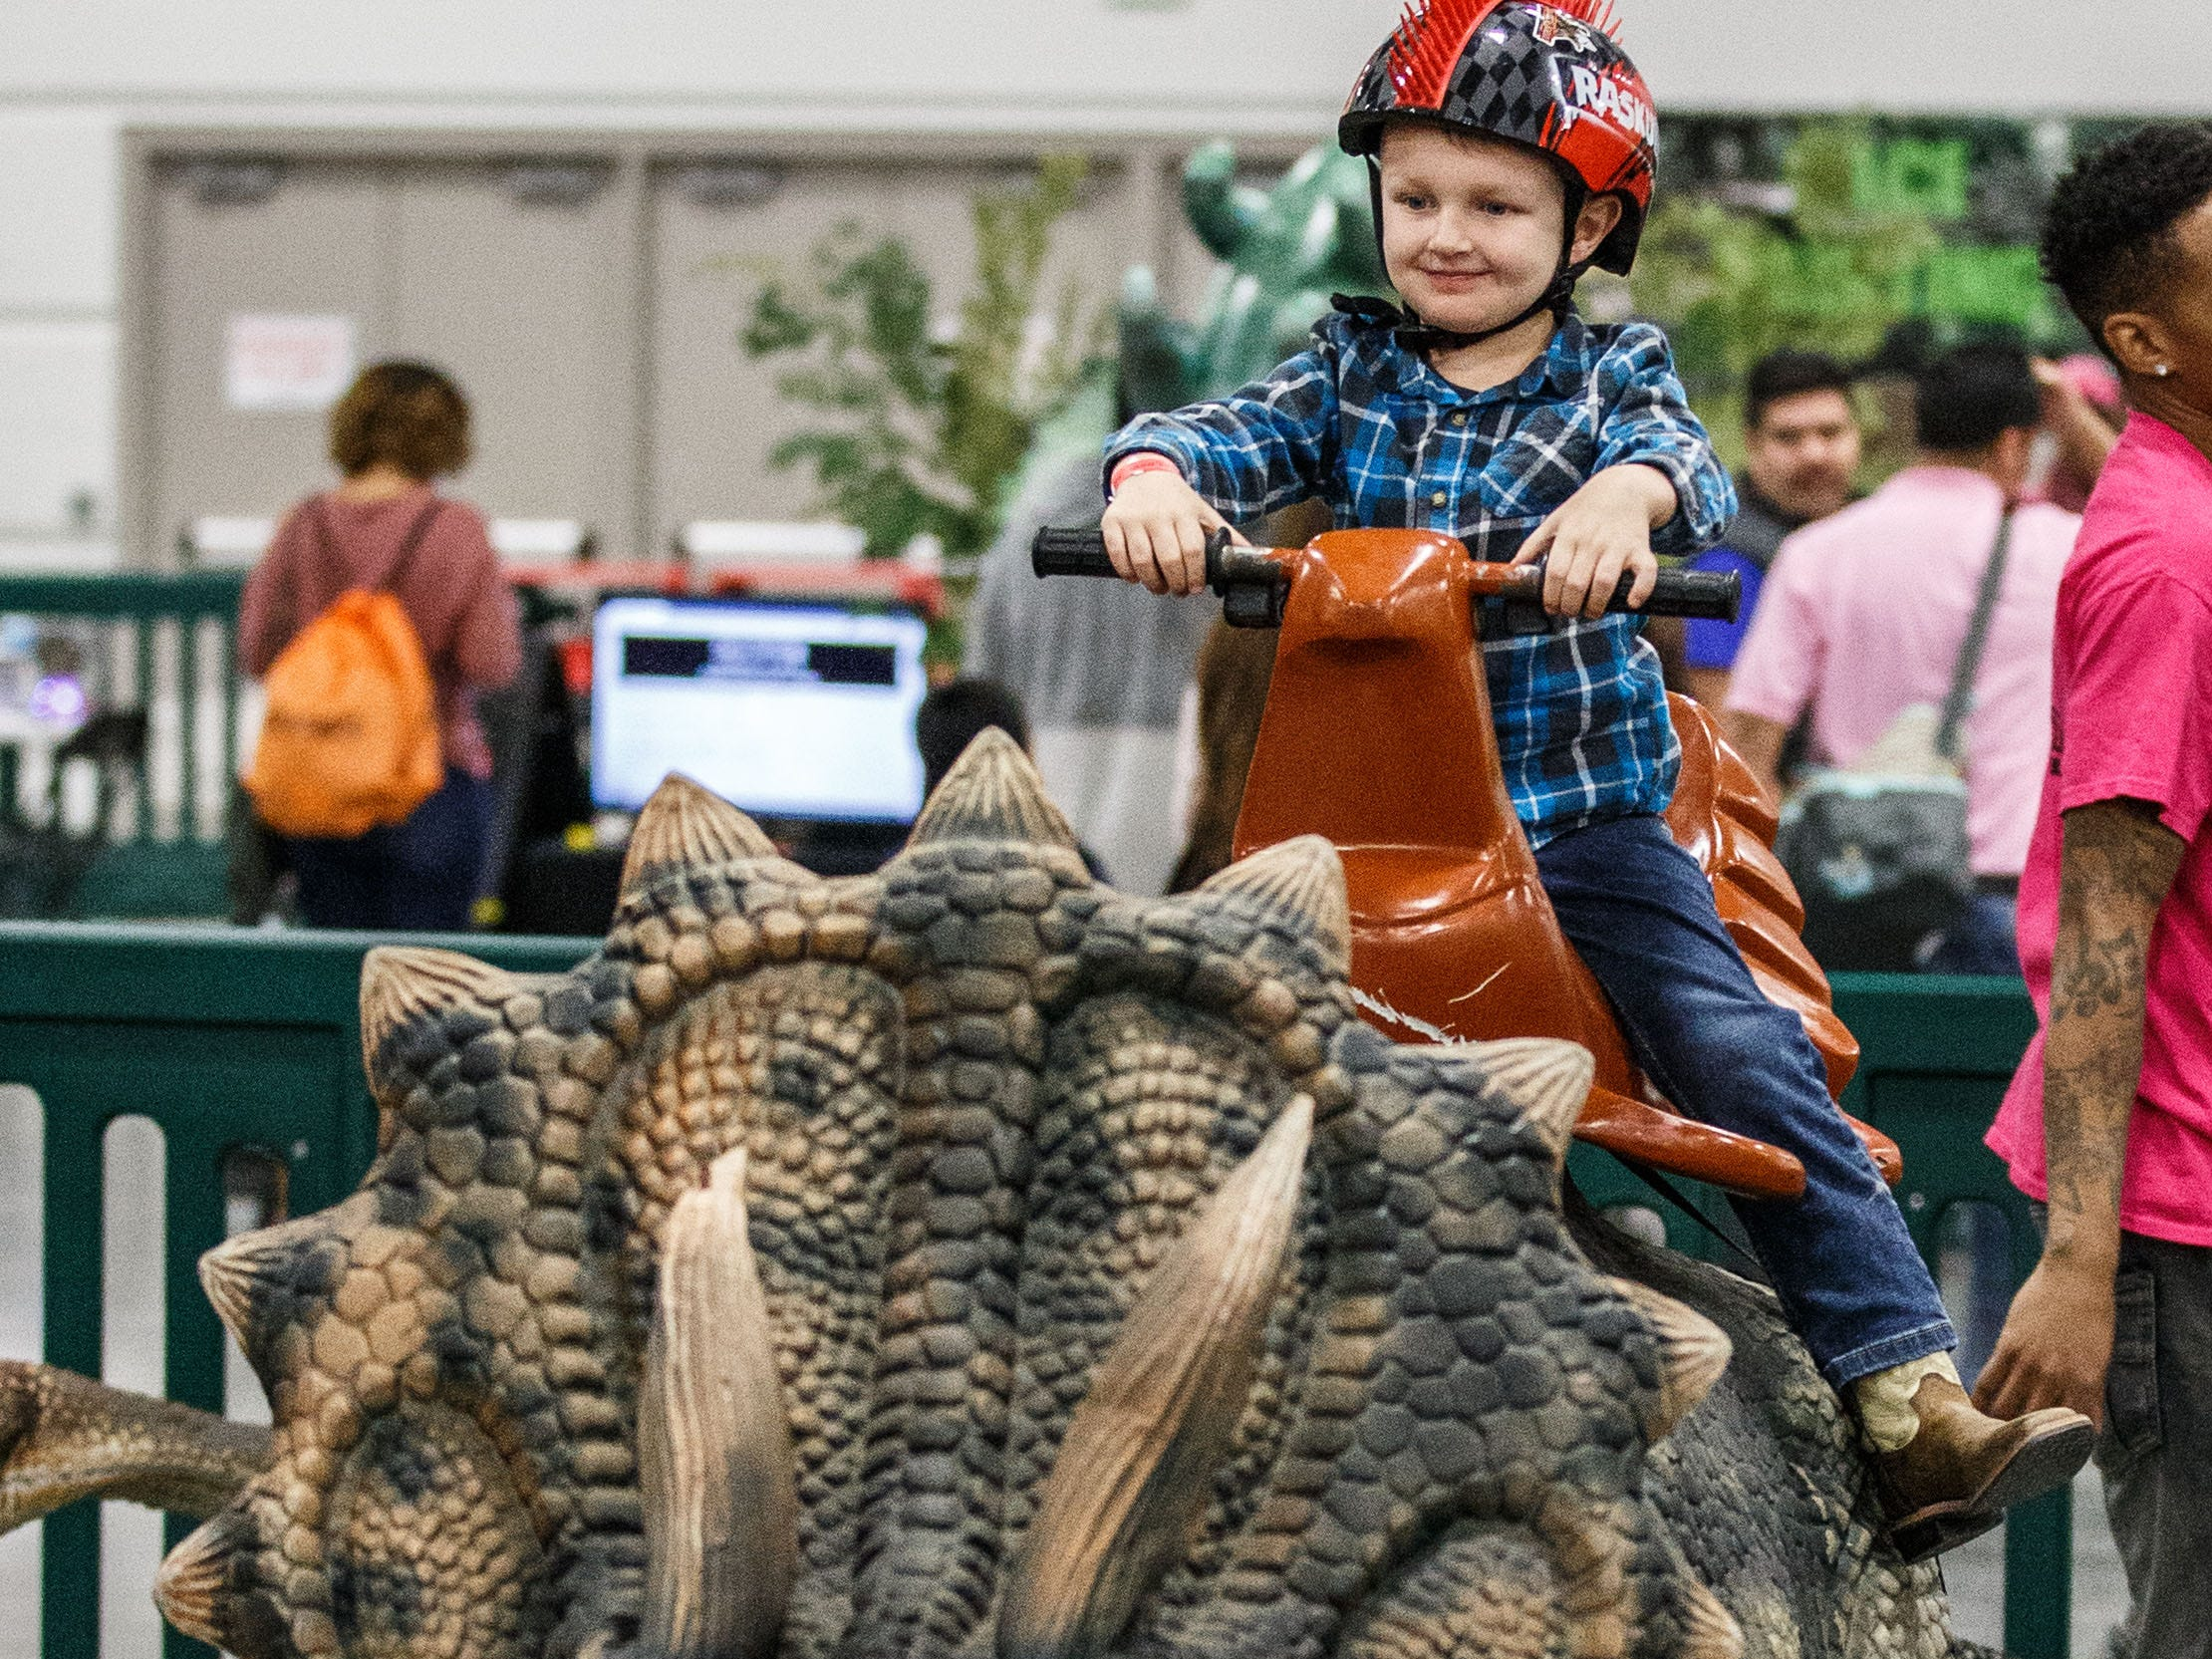 Jaxon Hurth, 4, of Mukwonago rides a dinosaur during his visit to the Jurassic Quest exhibit at Wisconsin State Fair Park in West Allis on Sunday, Oct. 21, 2018. The three-day event featured more than 80 life-sized animatronic dinosaurs, fossils, games, crafts, bounce houses and more.